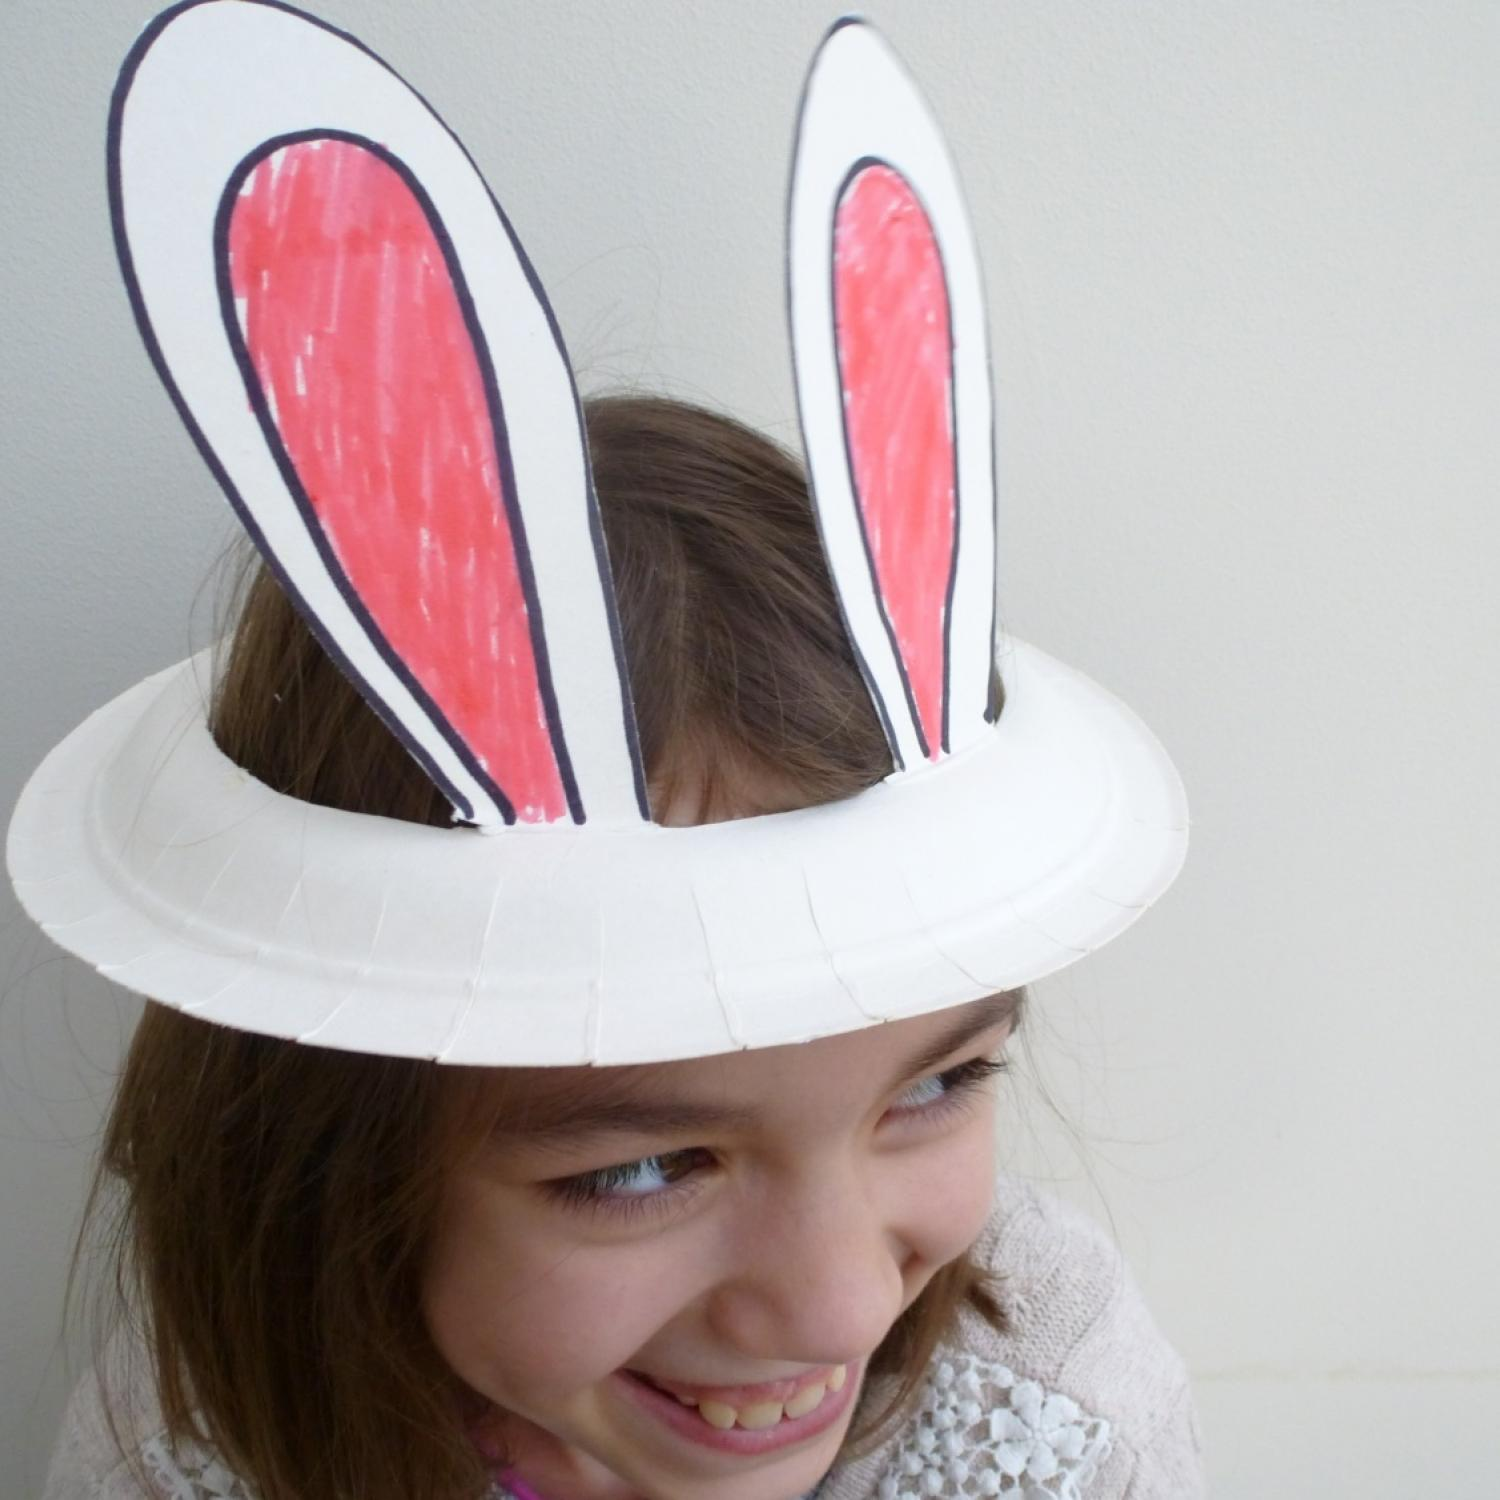 & 10 Cute Easter Crafts to Make with a Paper Plate | Parenting